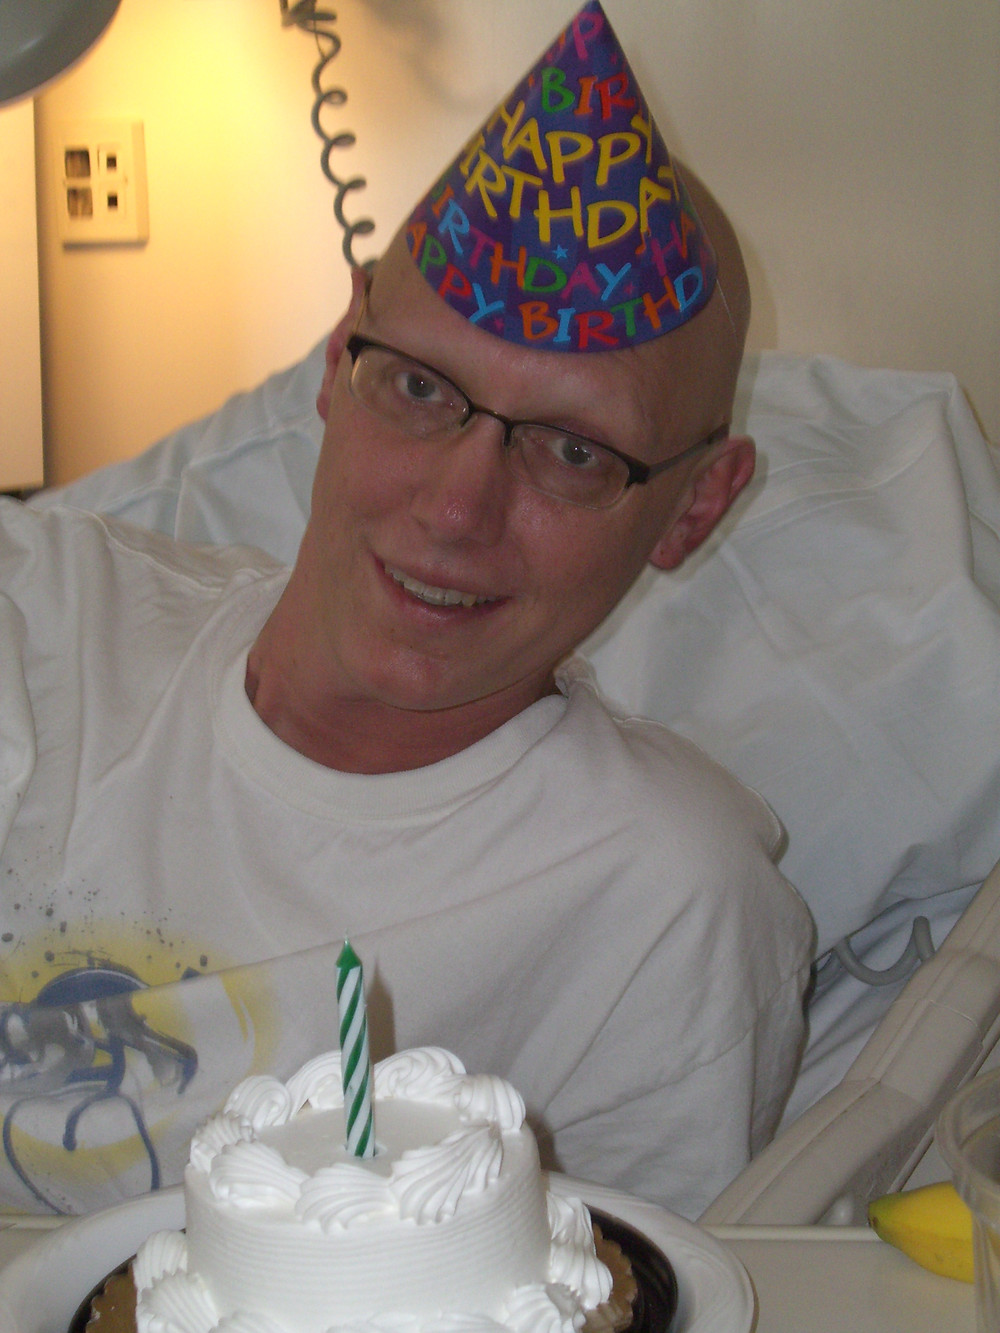 Art's 42 birthday in the middle of stem cell treatment